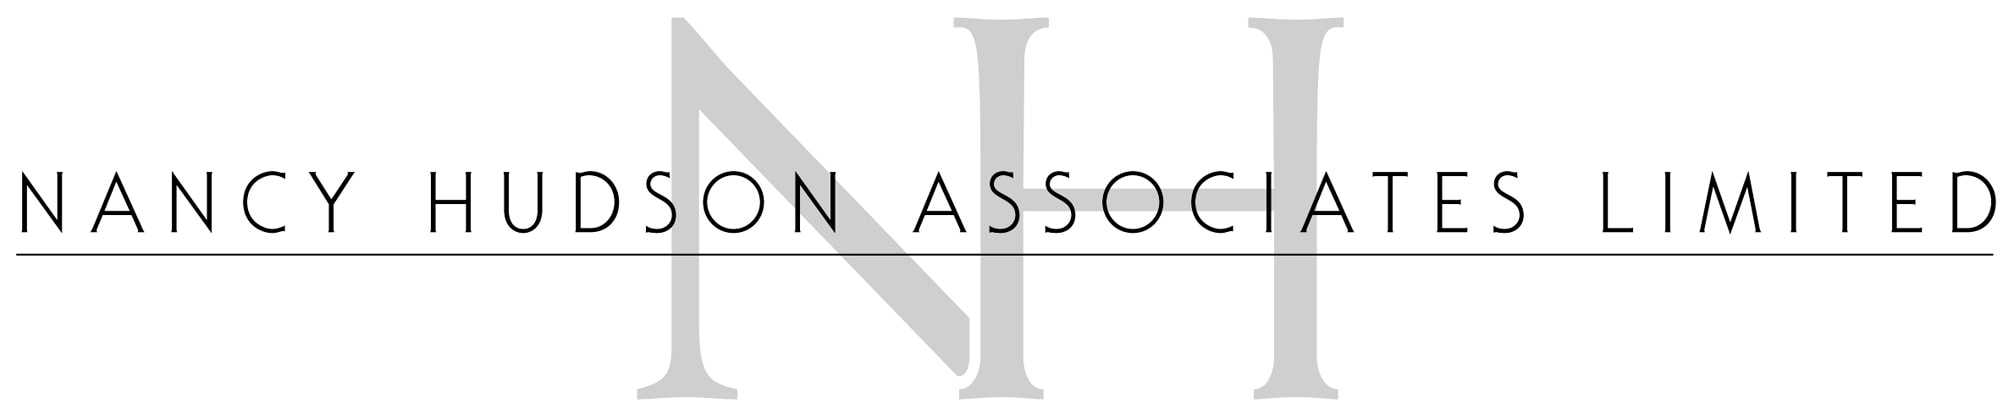 Nancy Hudson Associates Limited